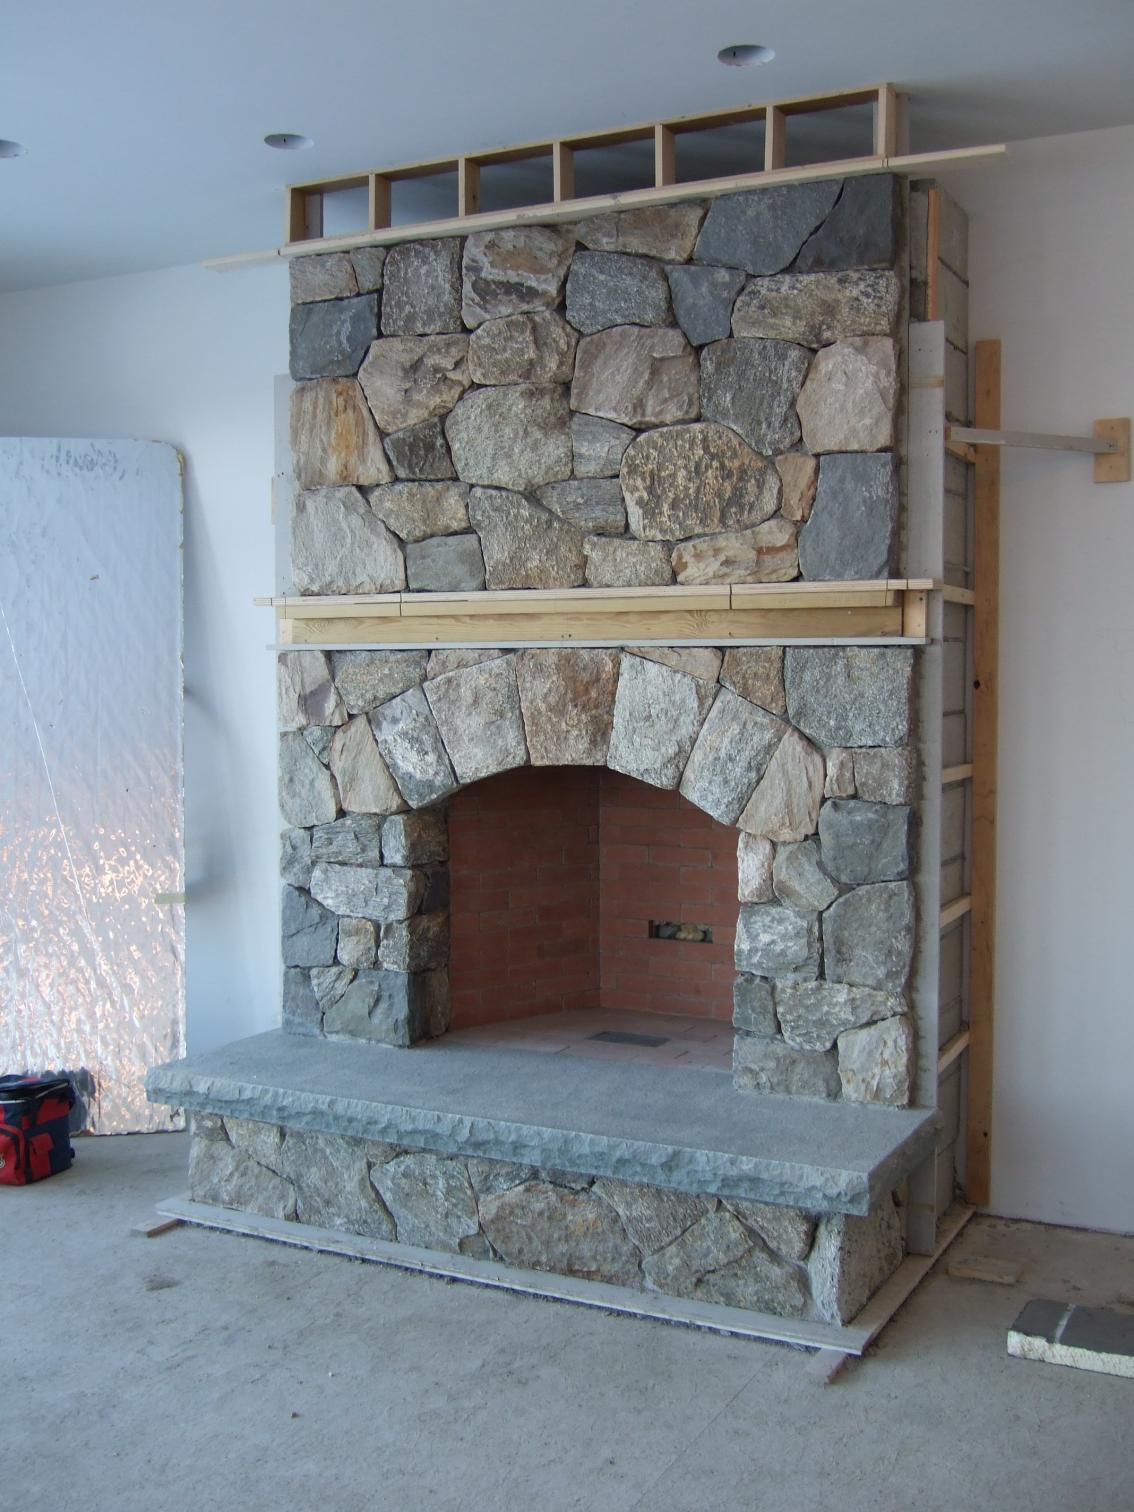 Fireplace Appealing Isokern Fireplace For Interior And Outdoor Isokern Fireplace And Chimney Systems - Masonry